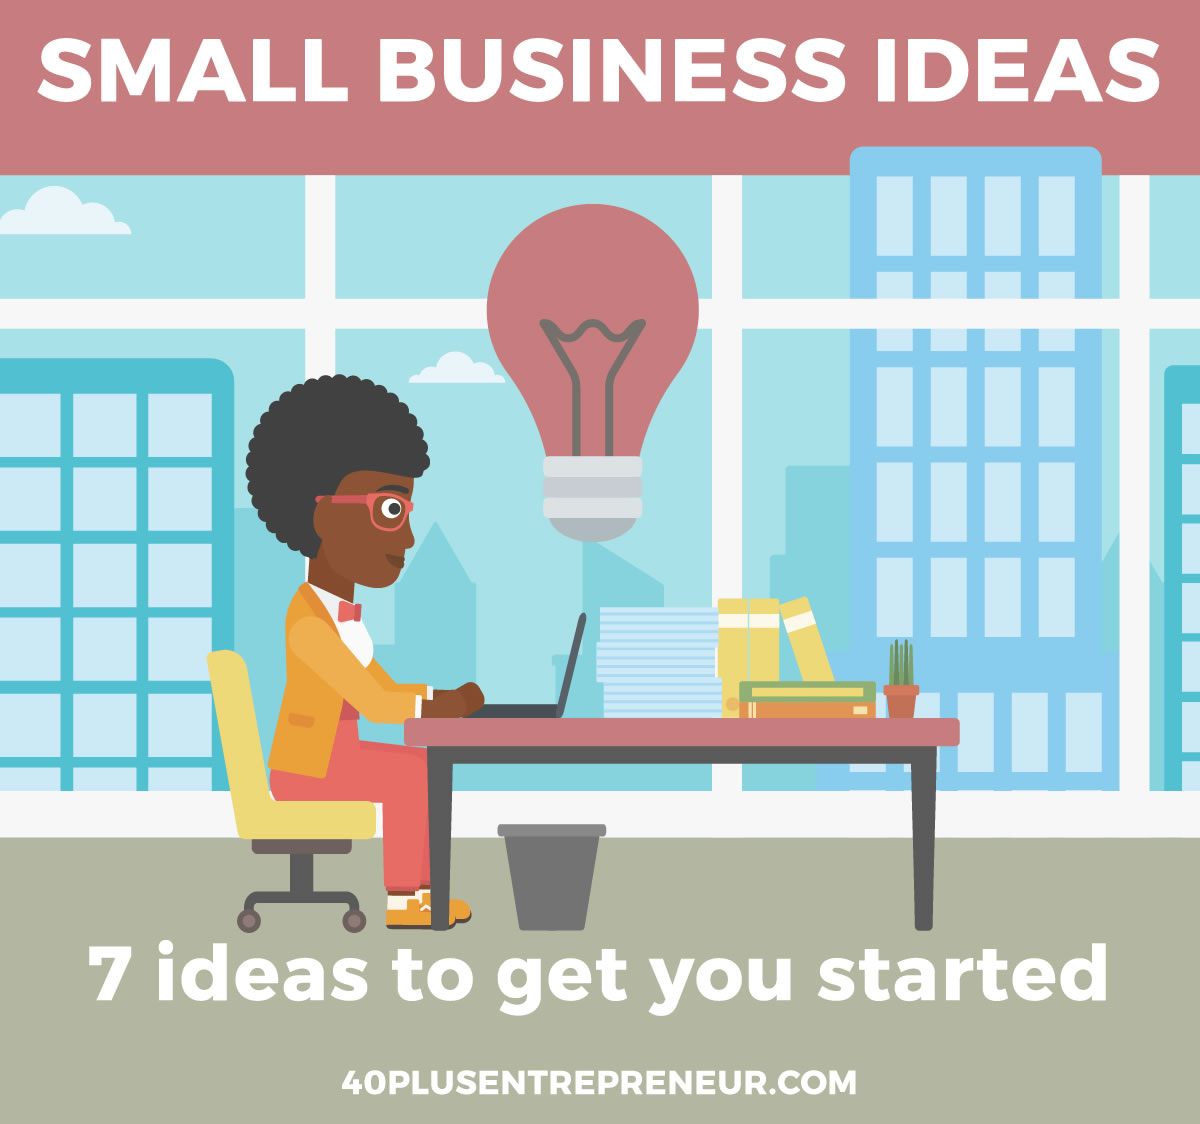 Small business ideas: a selection of sites